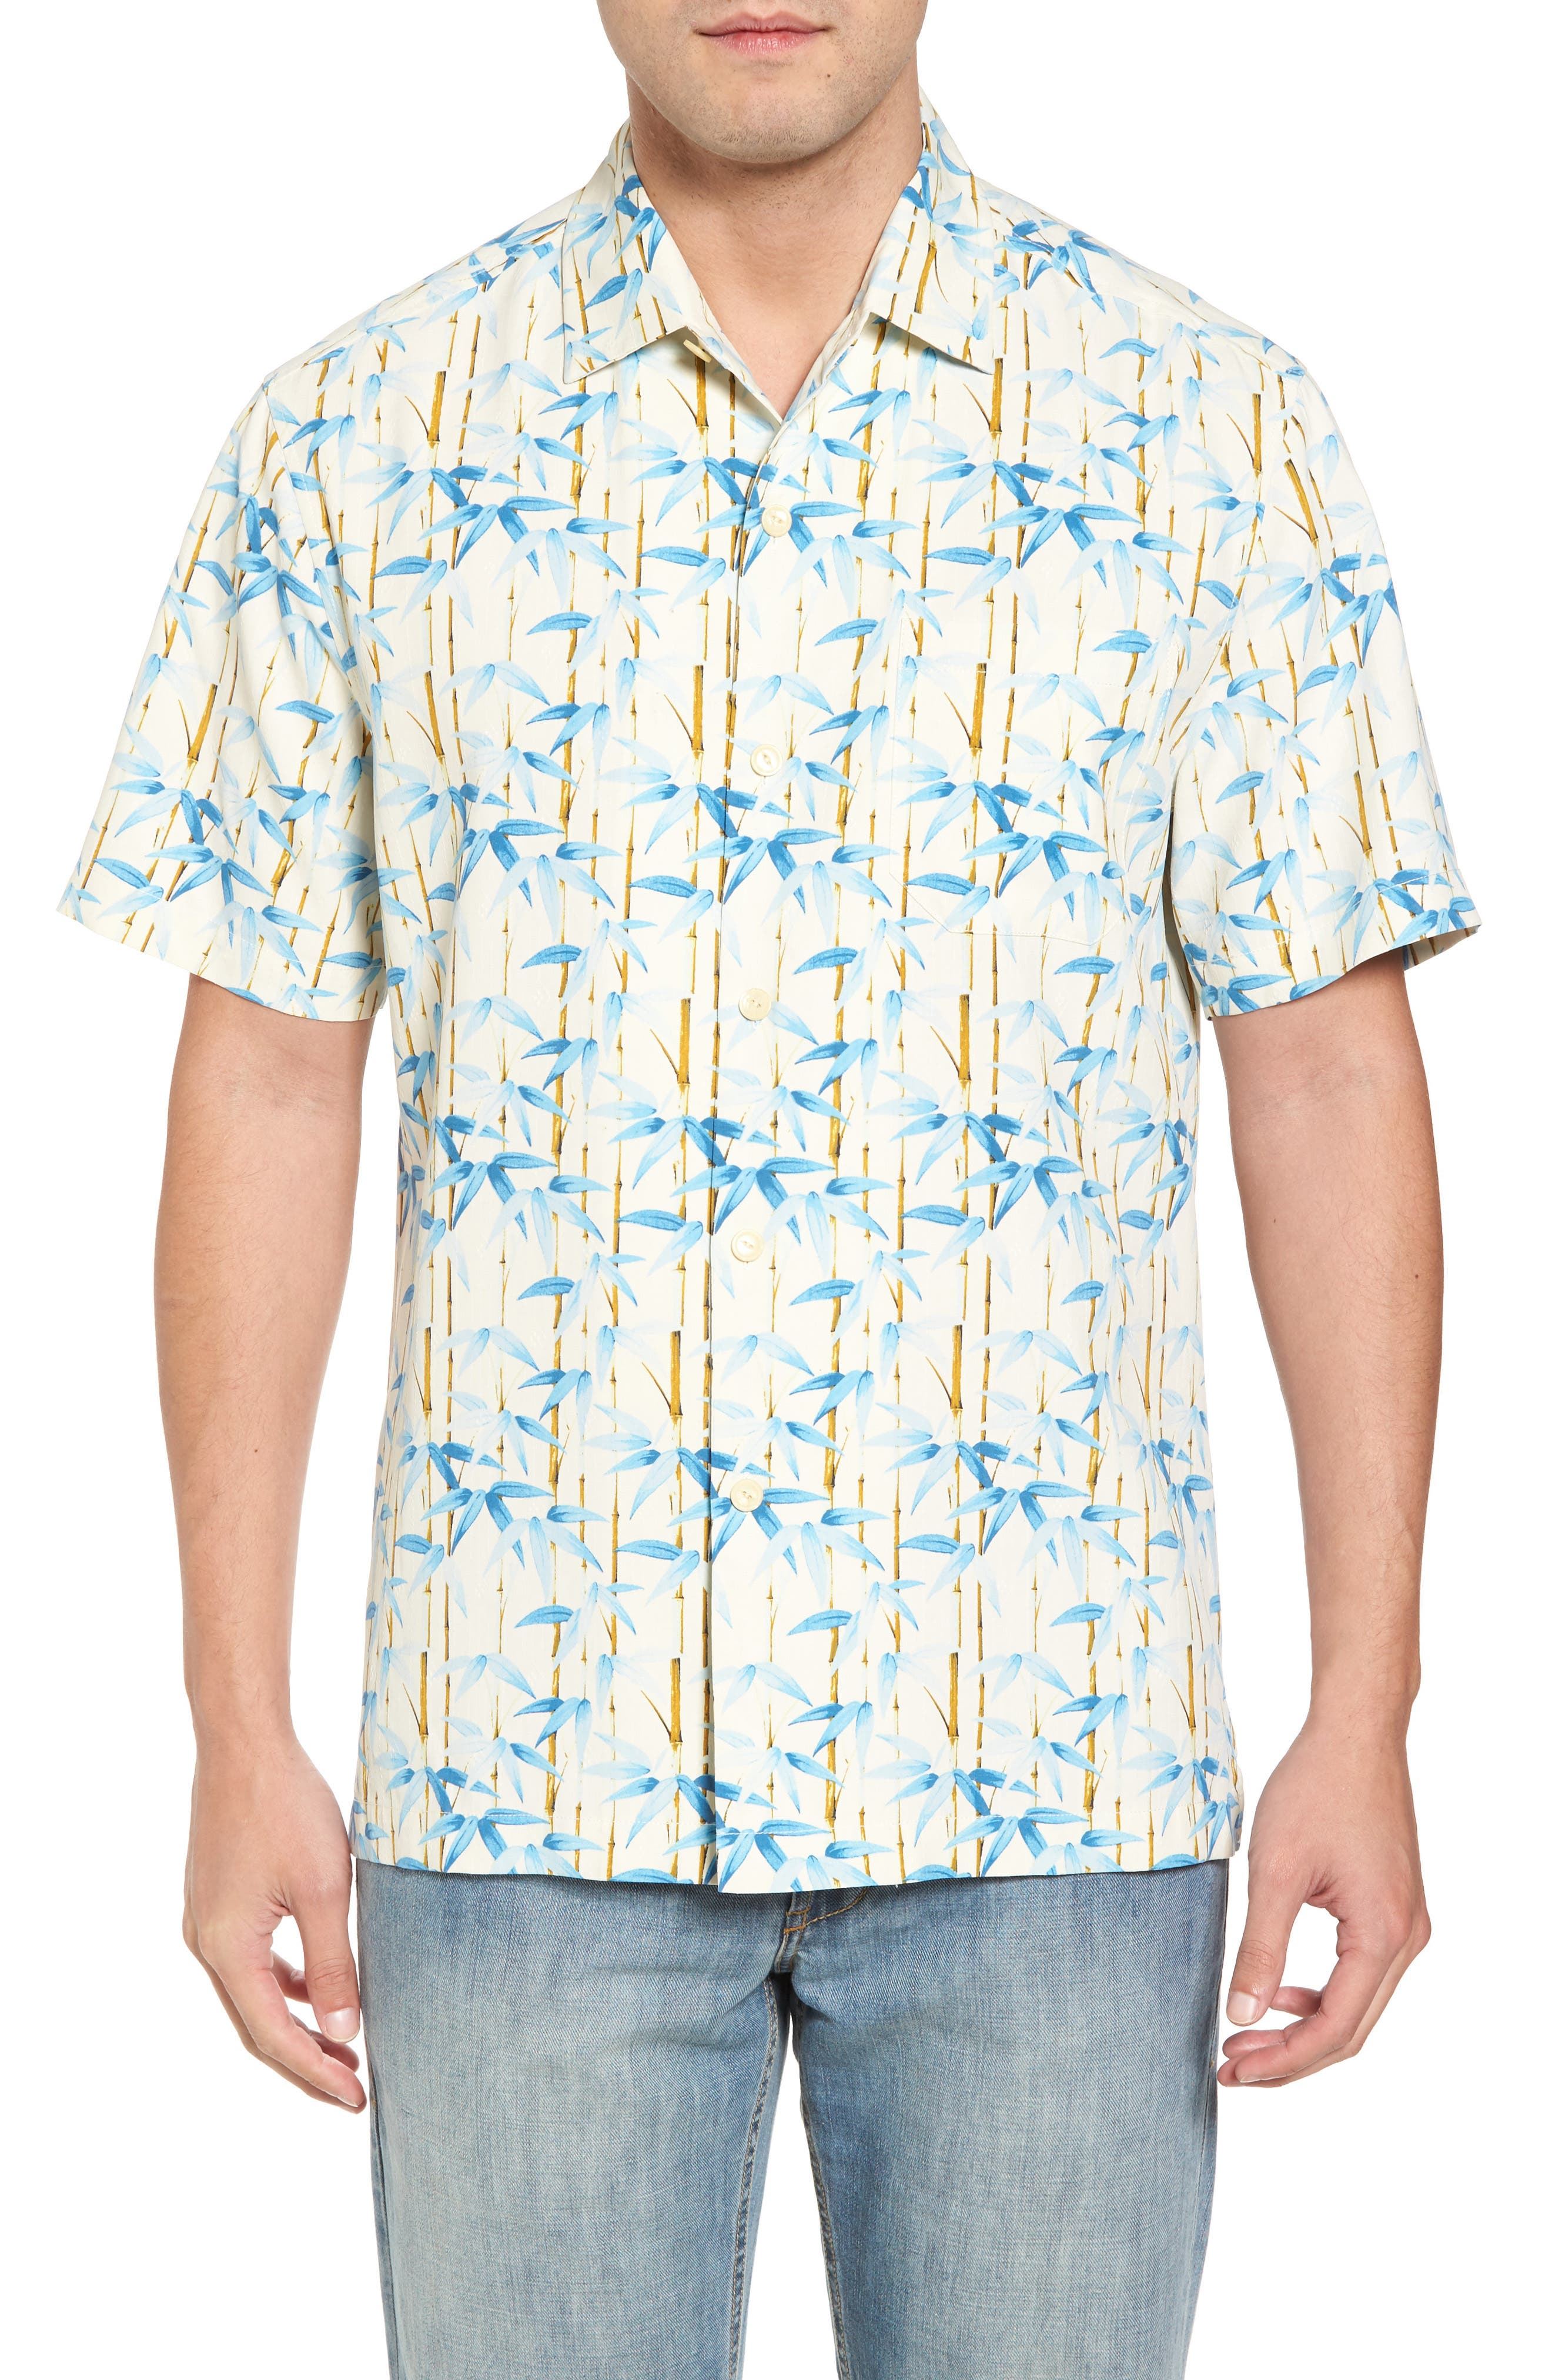 TOMMY BAHAMA Forest Print Silk Sport Shirt, Main, color, 100